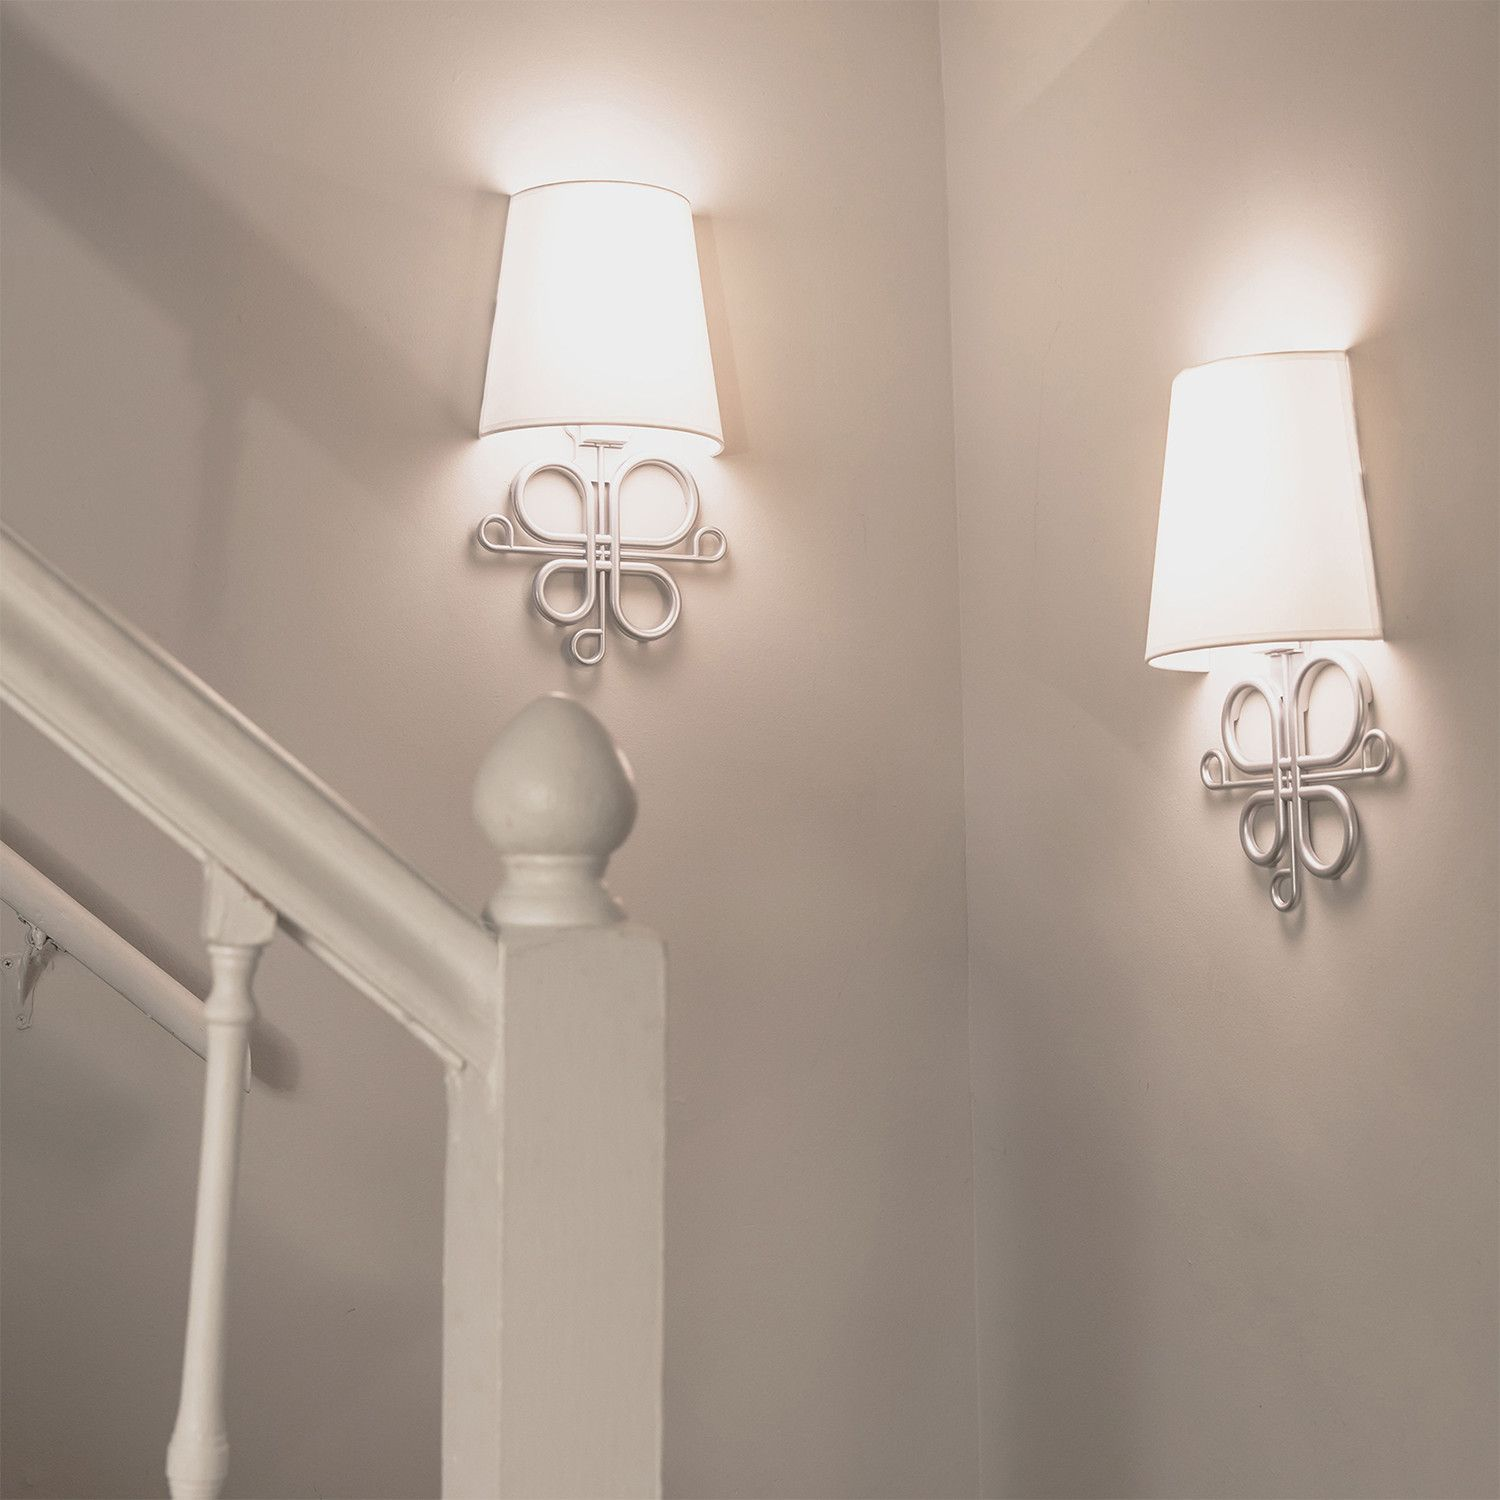 Smart Sconce Light 2 Pack Classic Style In 2020 Wireless Wall Sconce Sconces Sconce Lighting